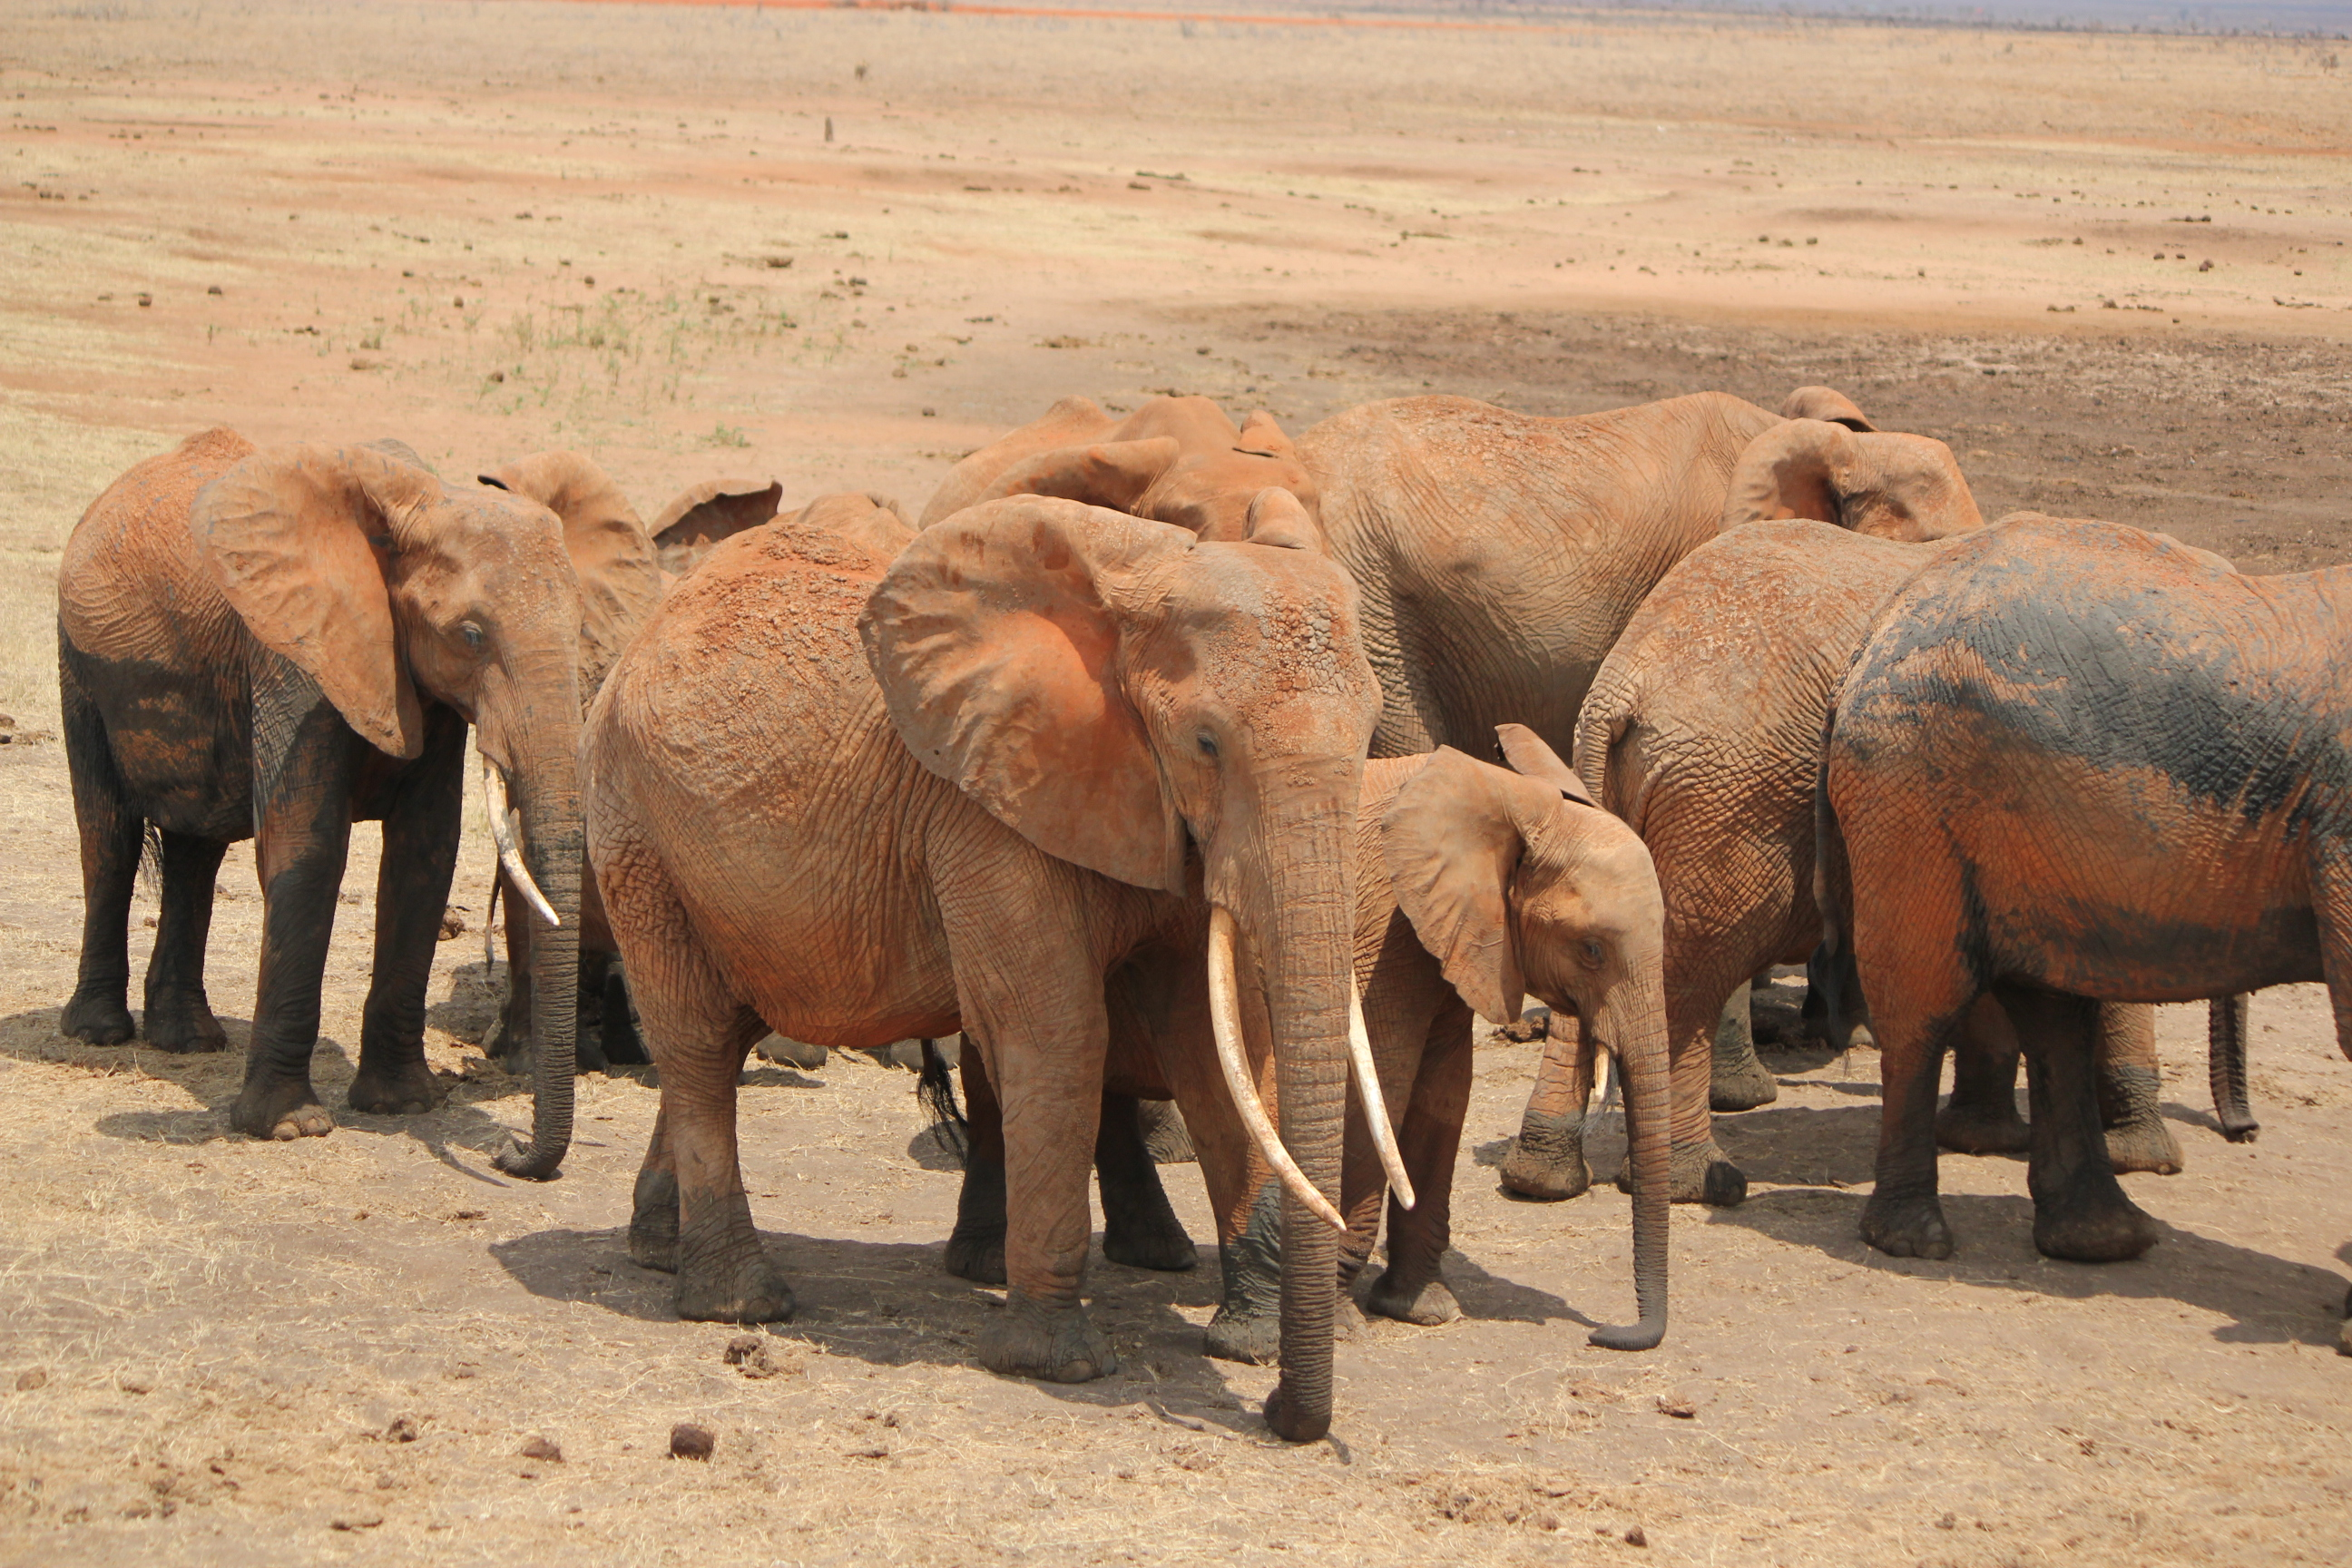 Elephants; East Tsavo National Park, Kenya; 2011